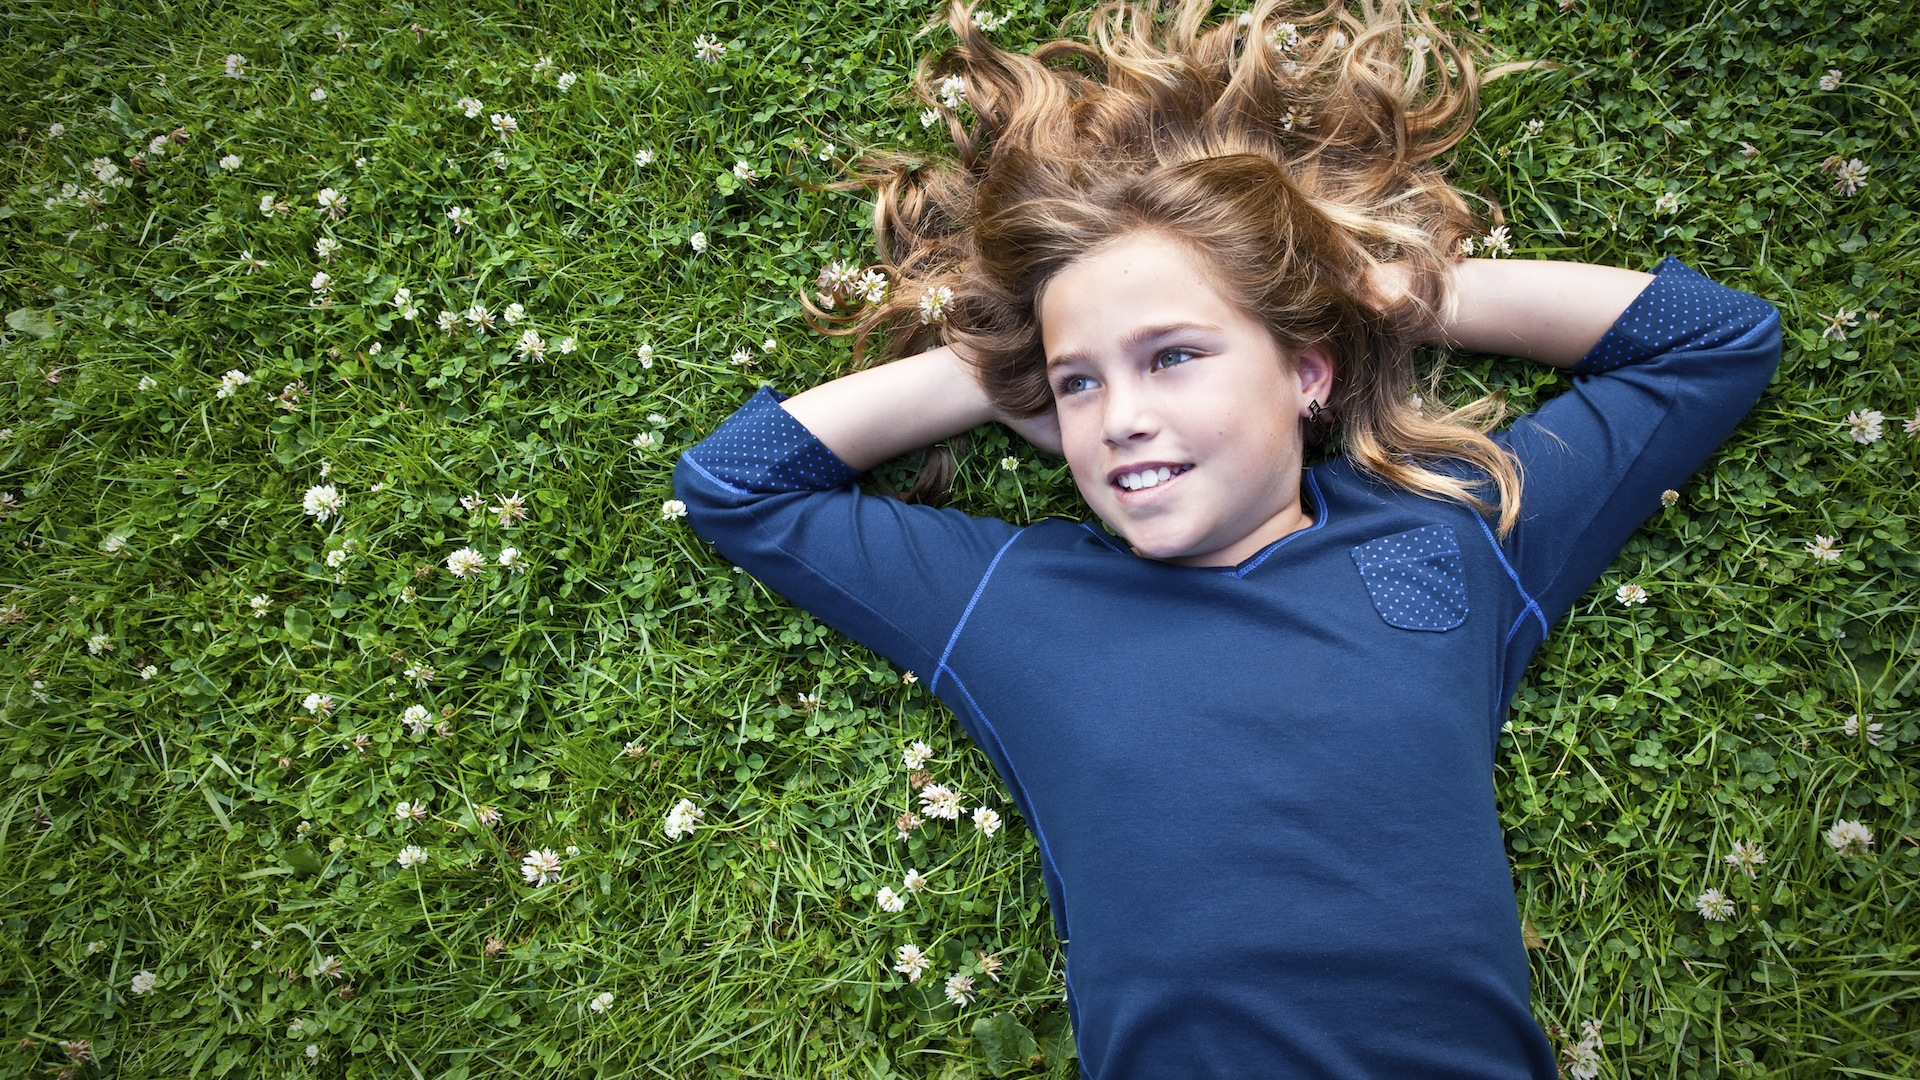 Are you holding your own daughter back? Here are 5 ways to raise girls to be leaders.